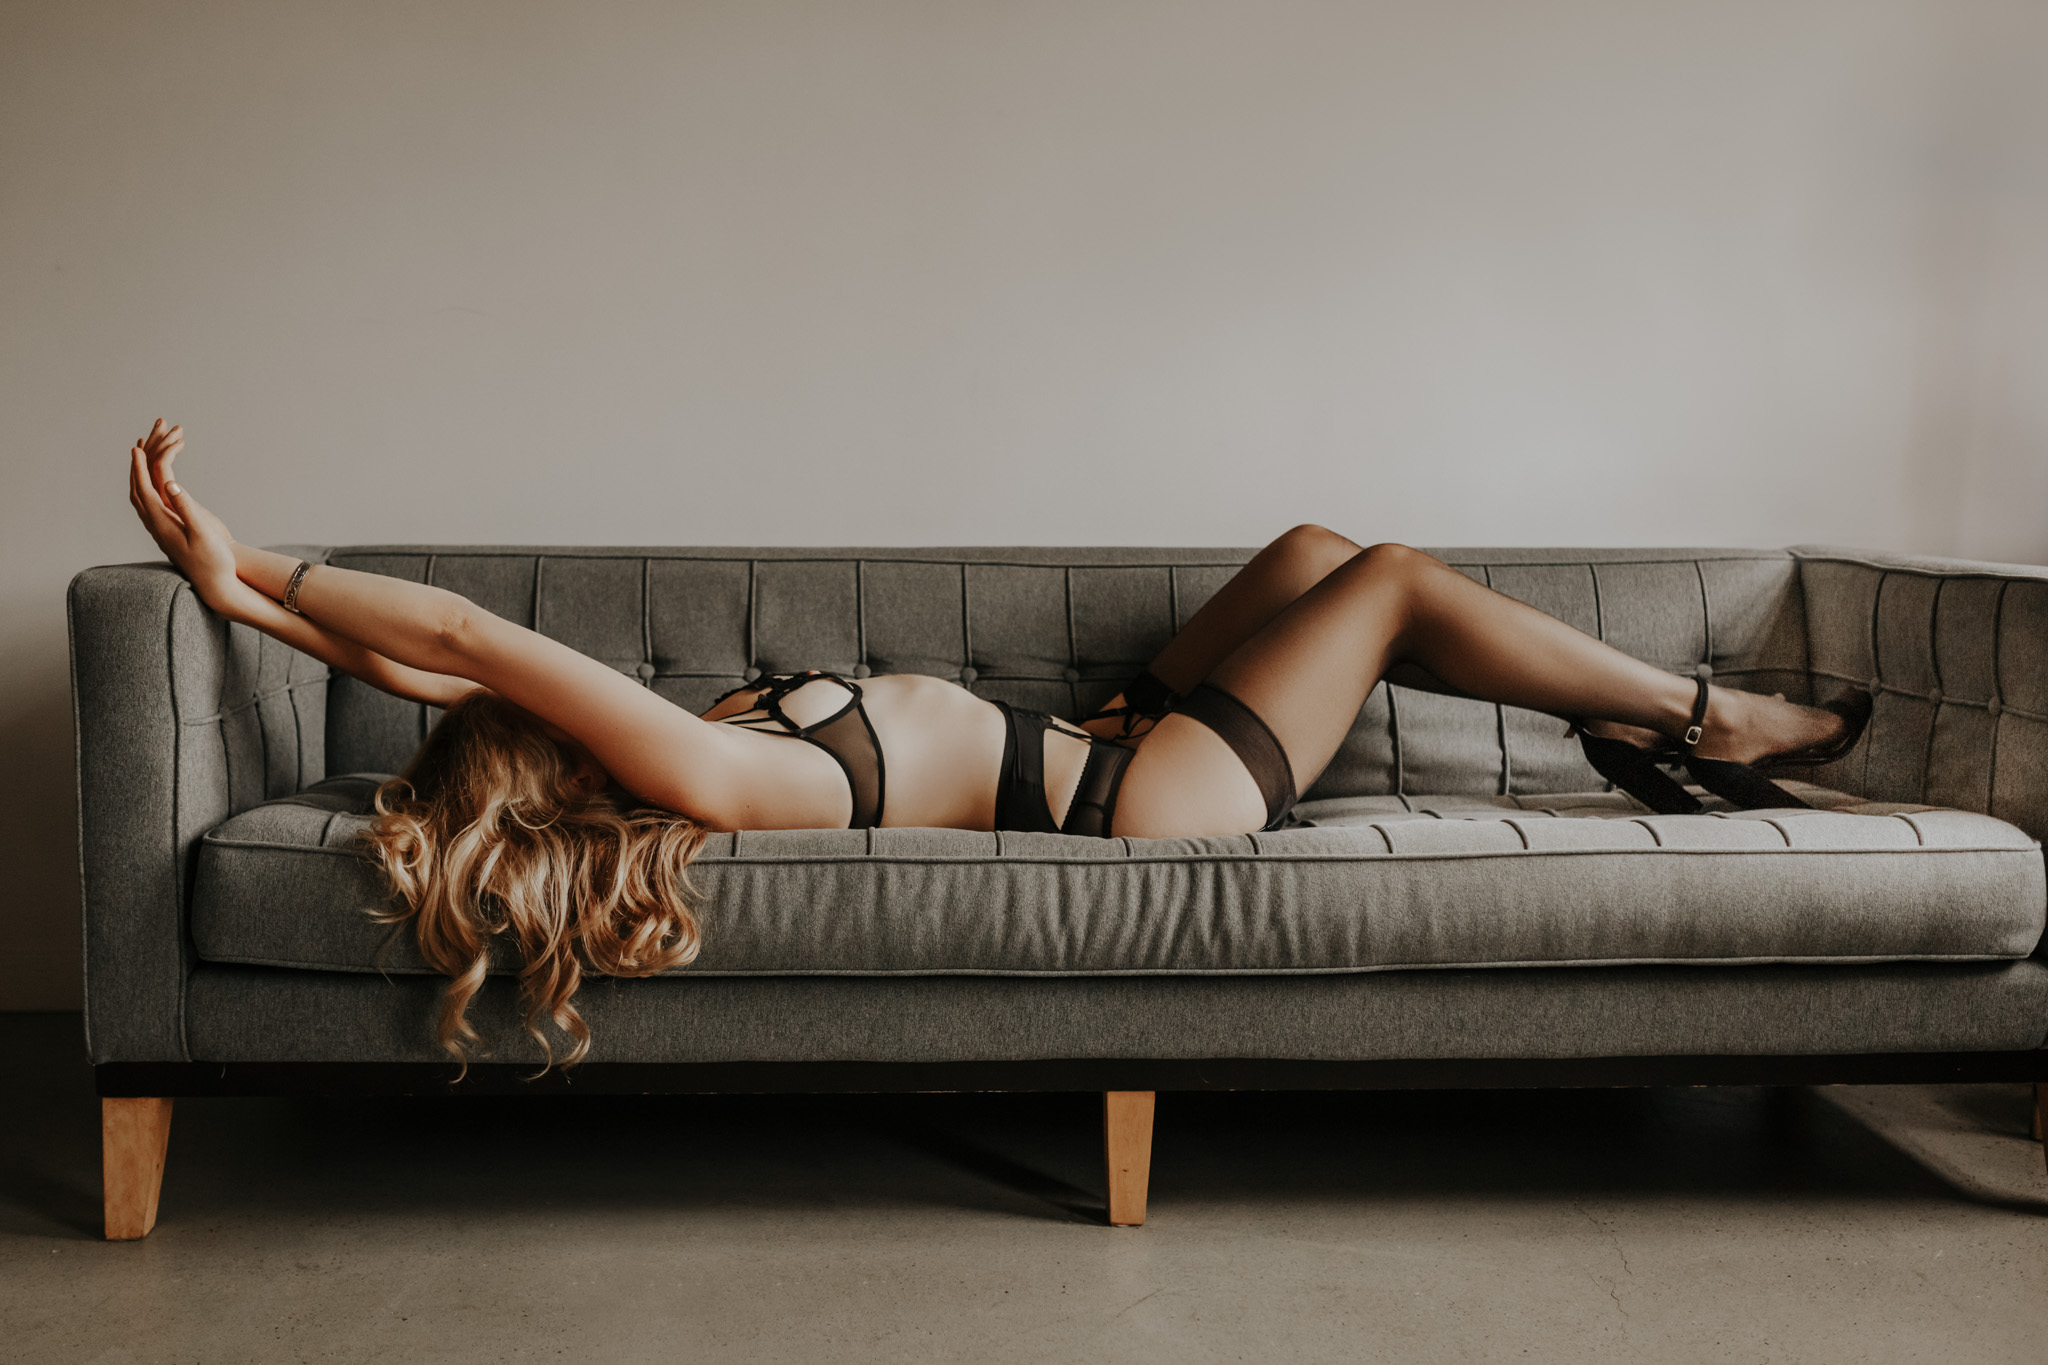 boudoir-photography-vancouver-bc-9.jpg